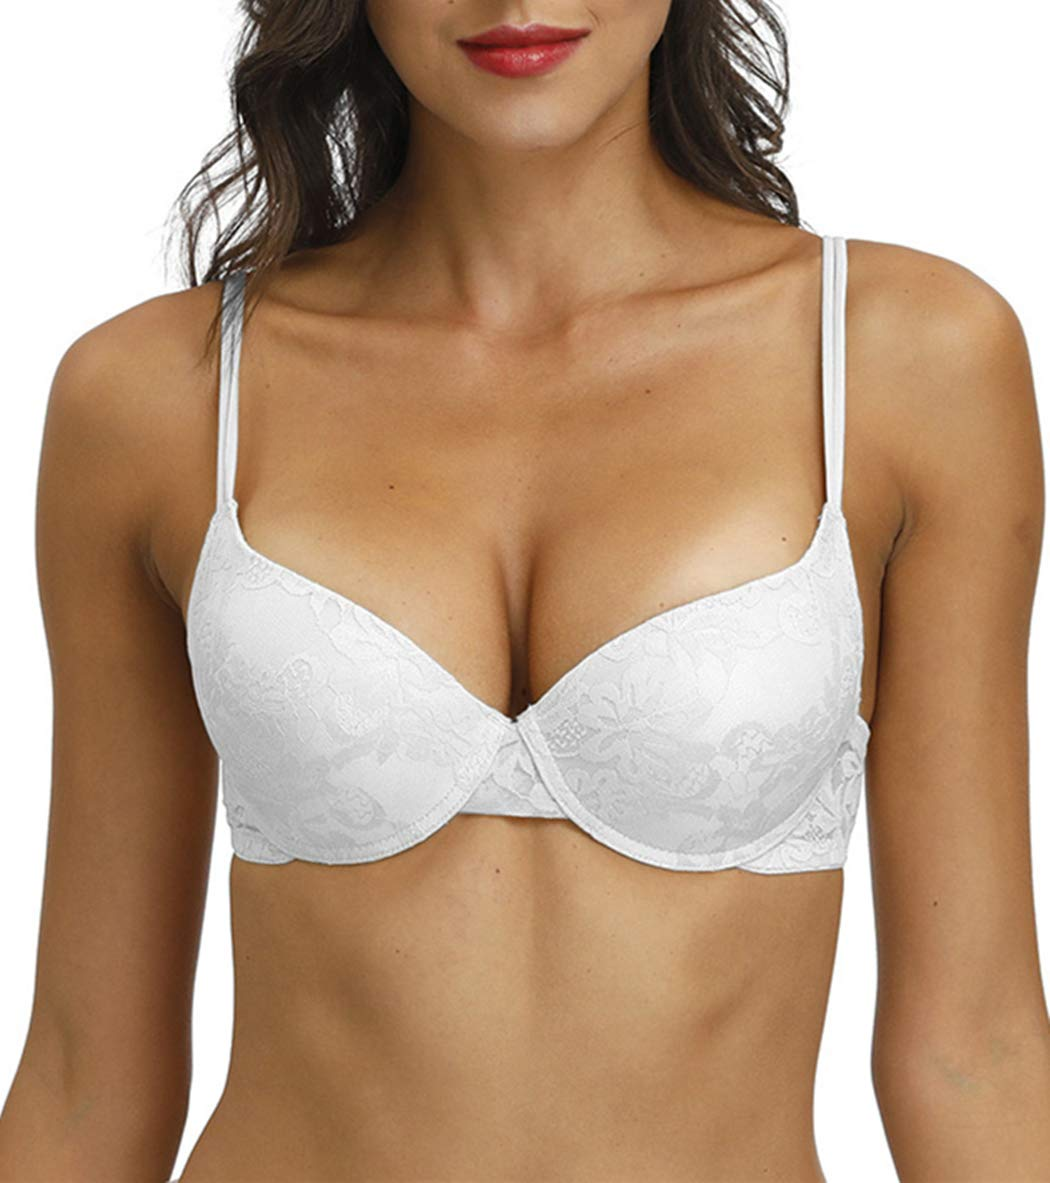 Push Up Bra for Women Demi Cup Padded Underwire Supportive Add Size Bras Lace Everyday Comfort